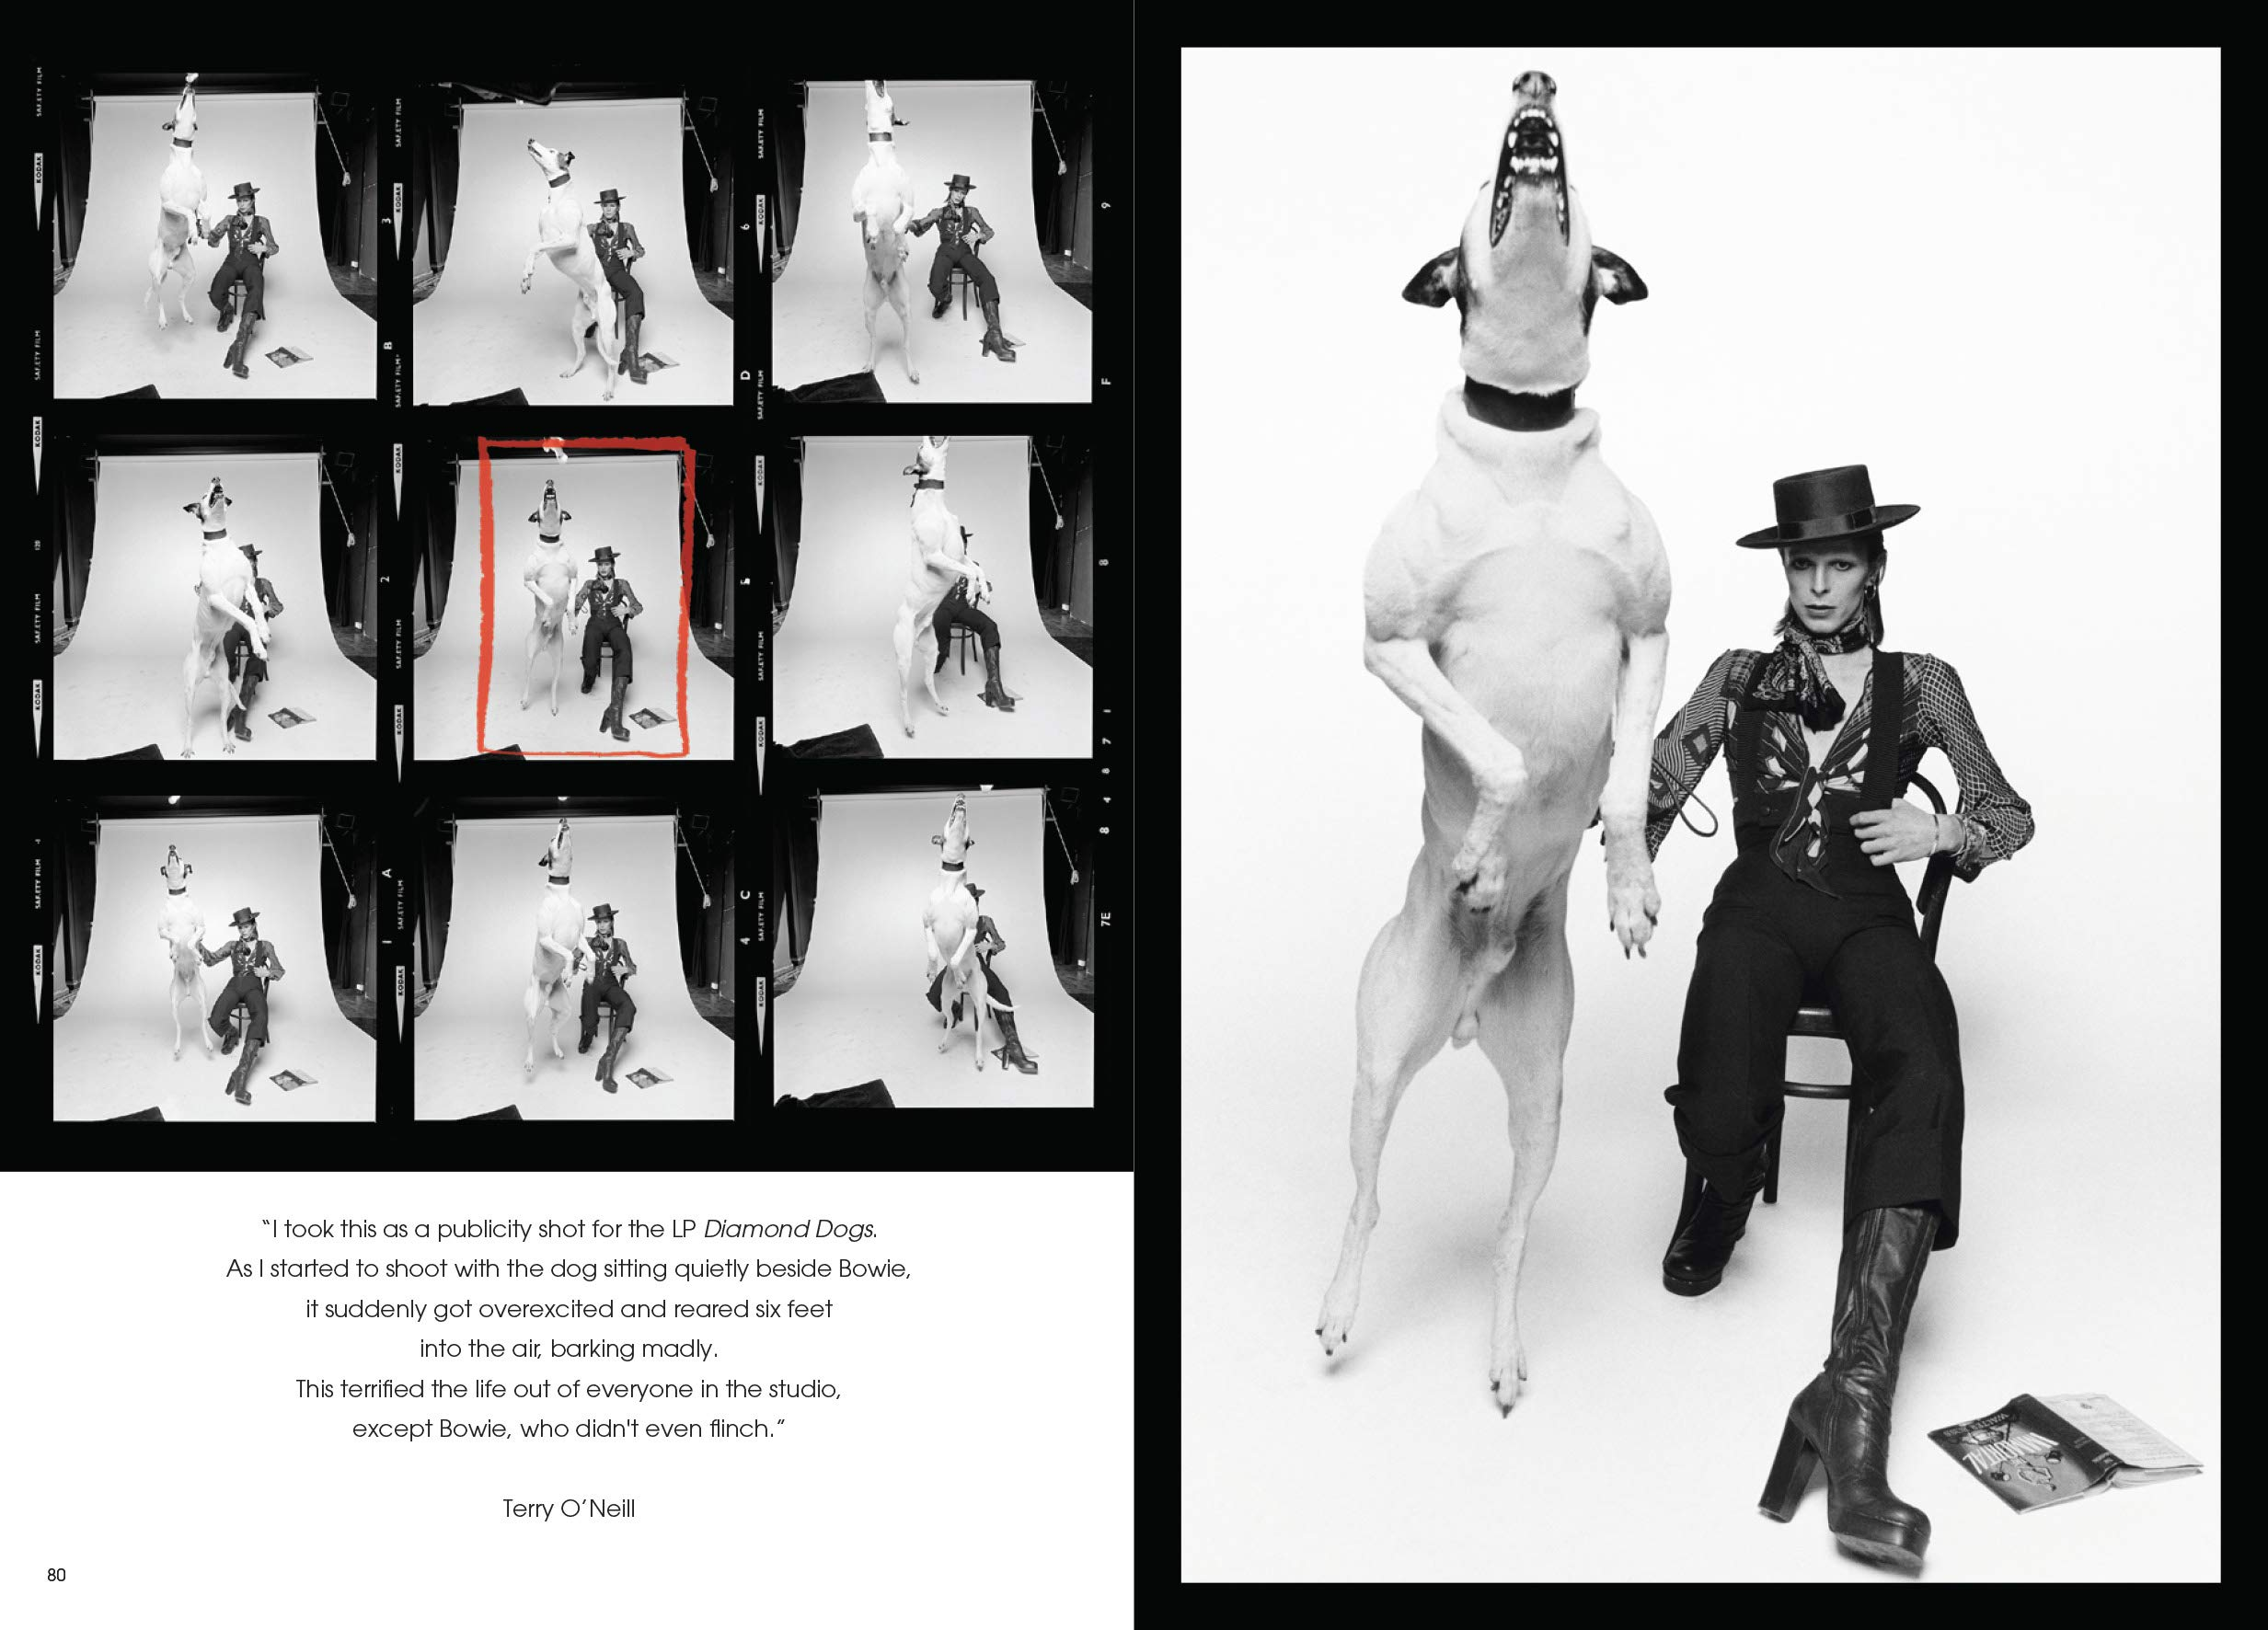 The definitive collection with unseen images Bowie by ONeill